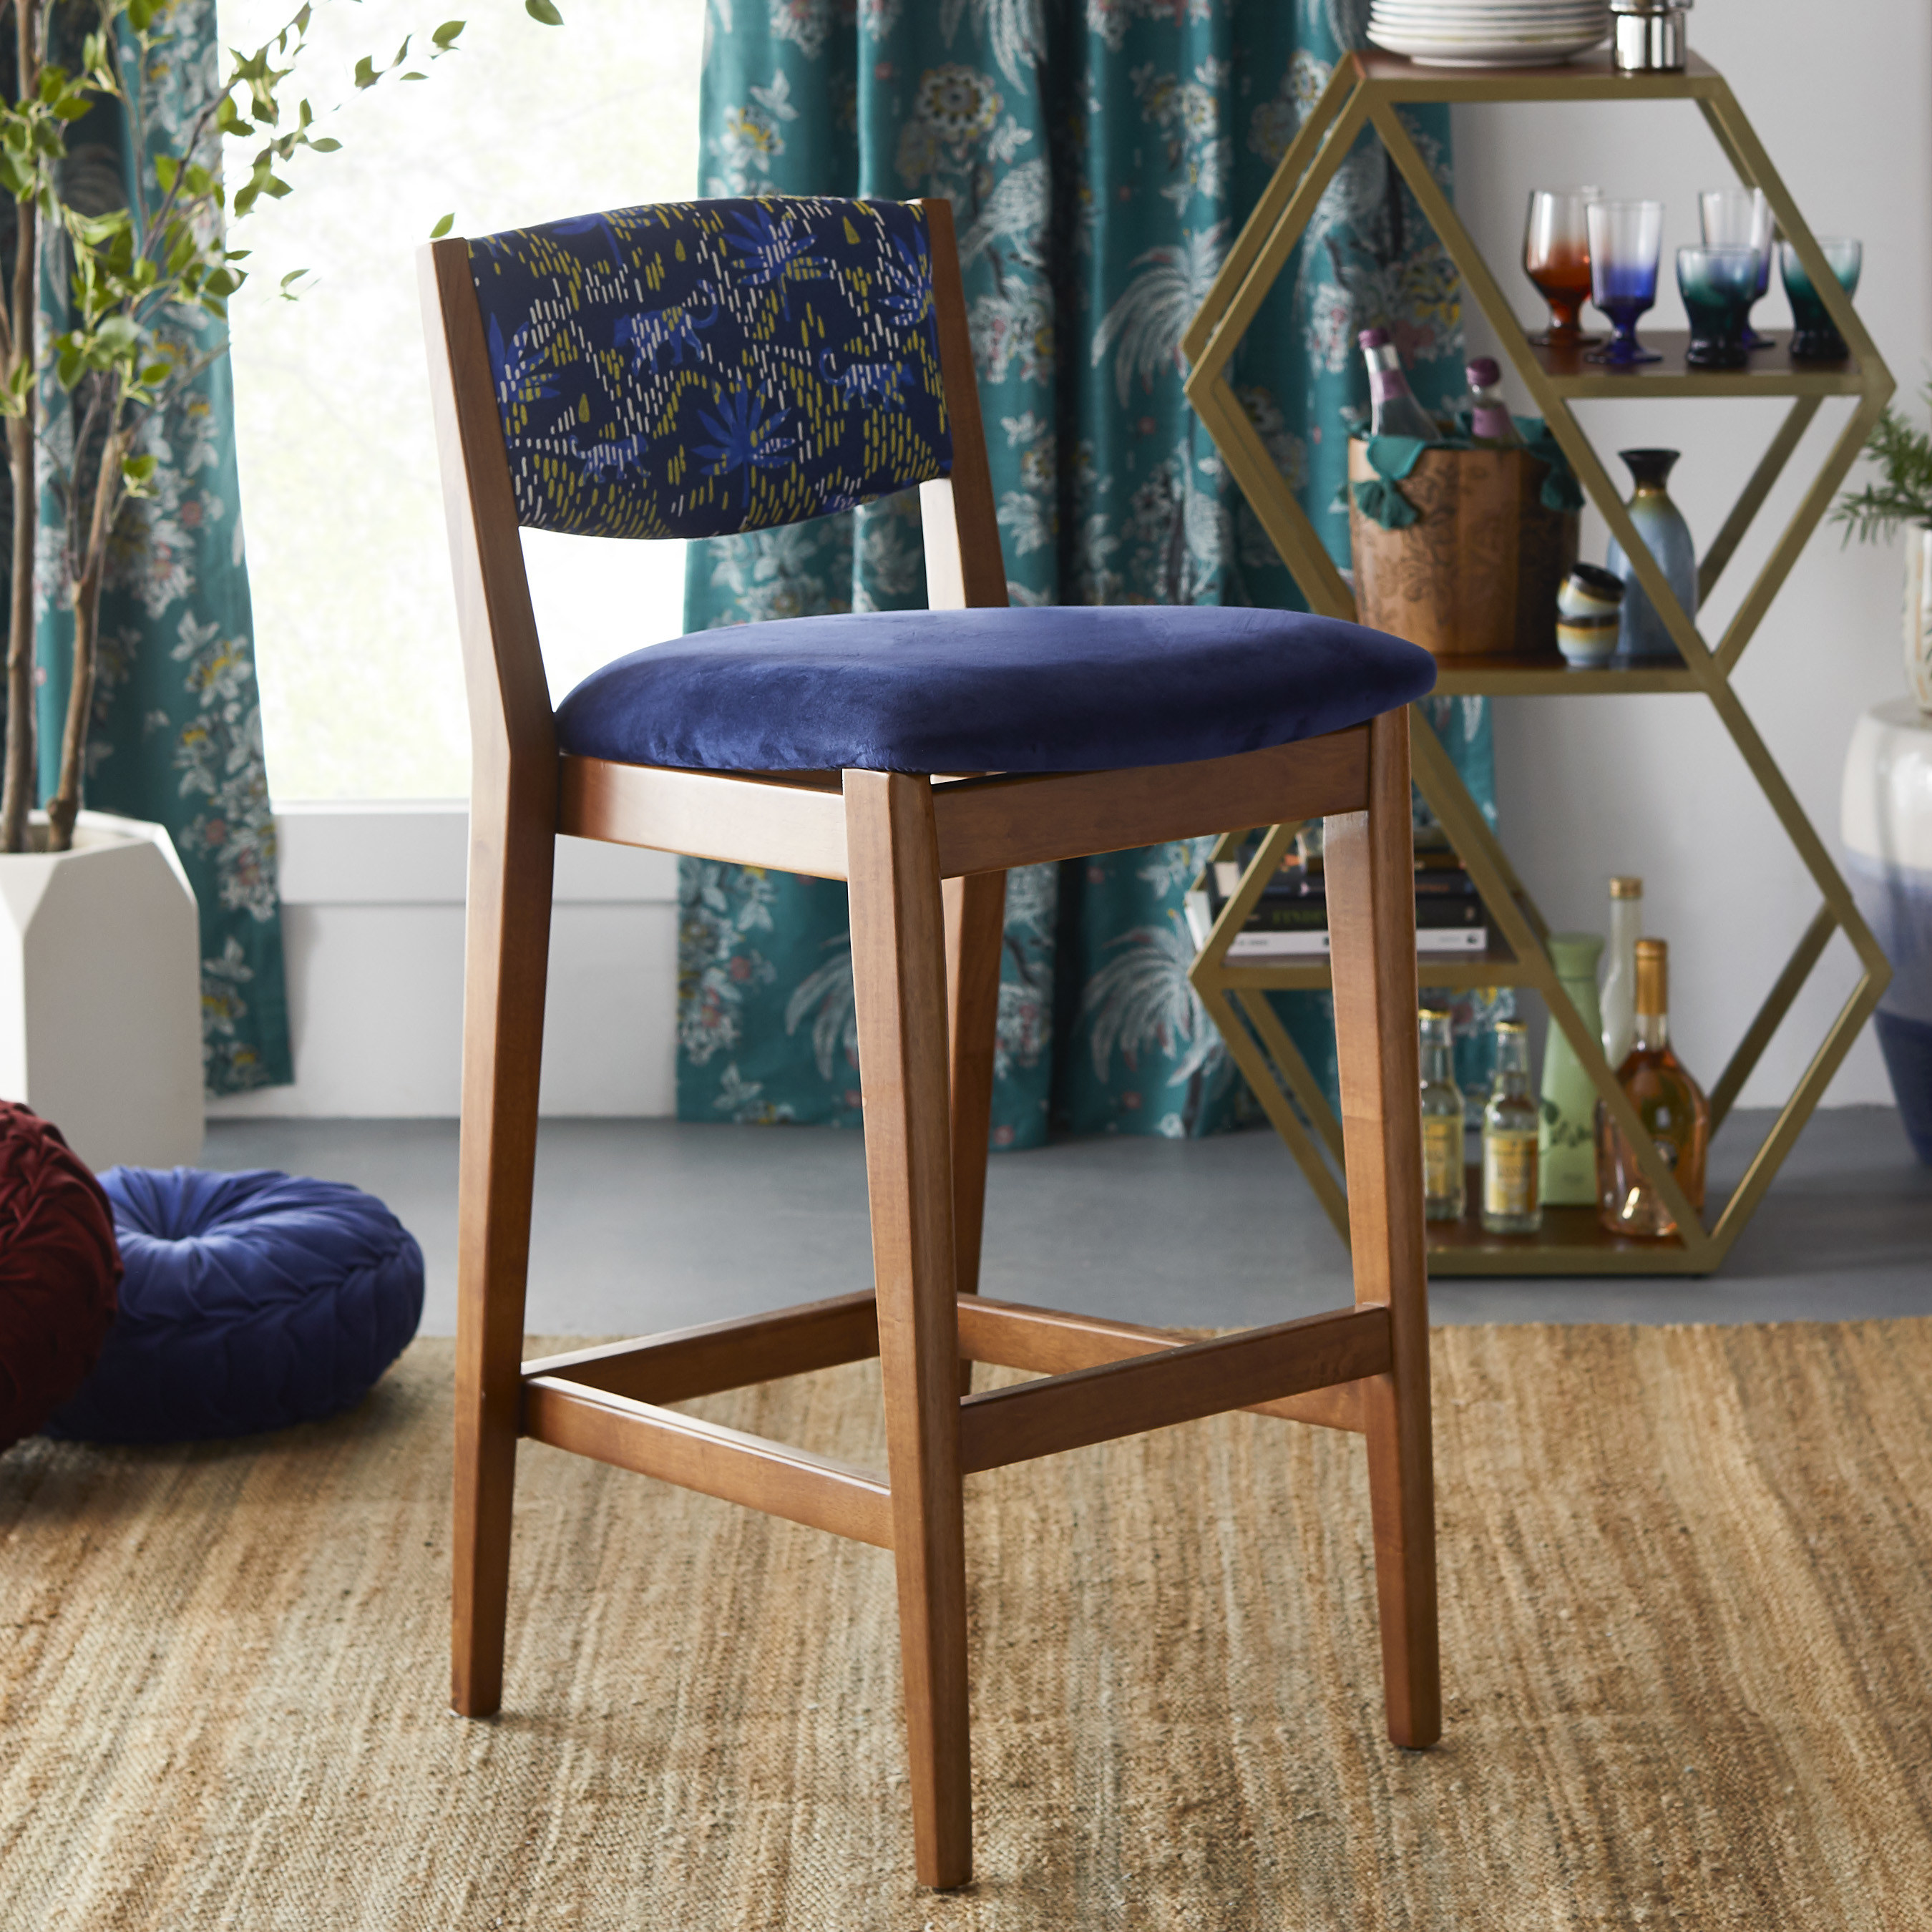 Blue and brown barstool in funky apartment